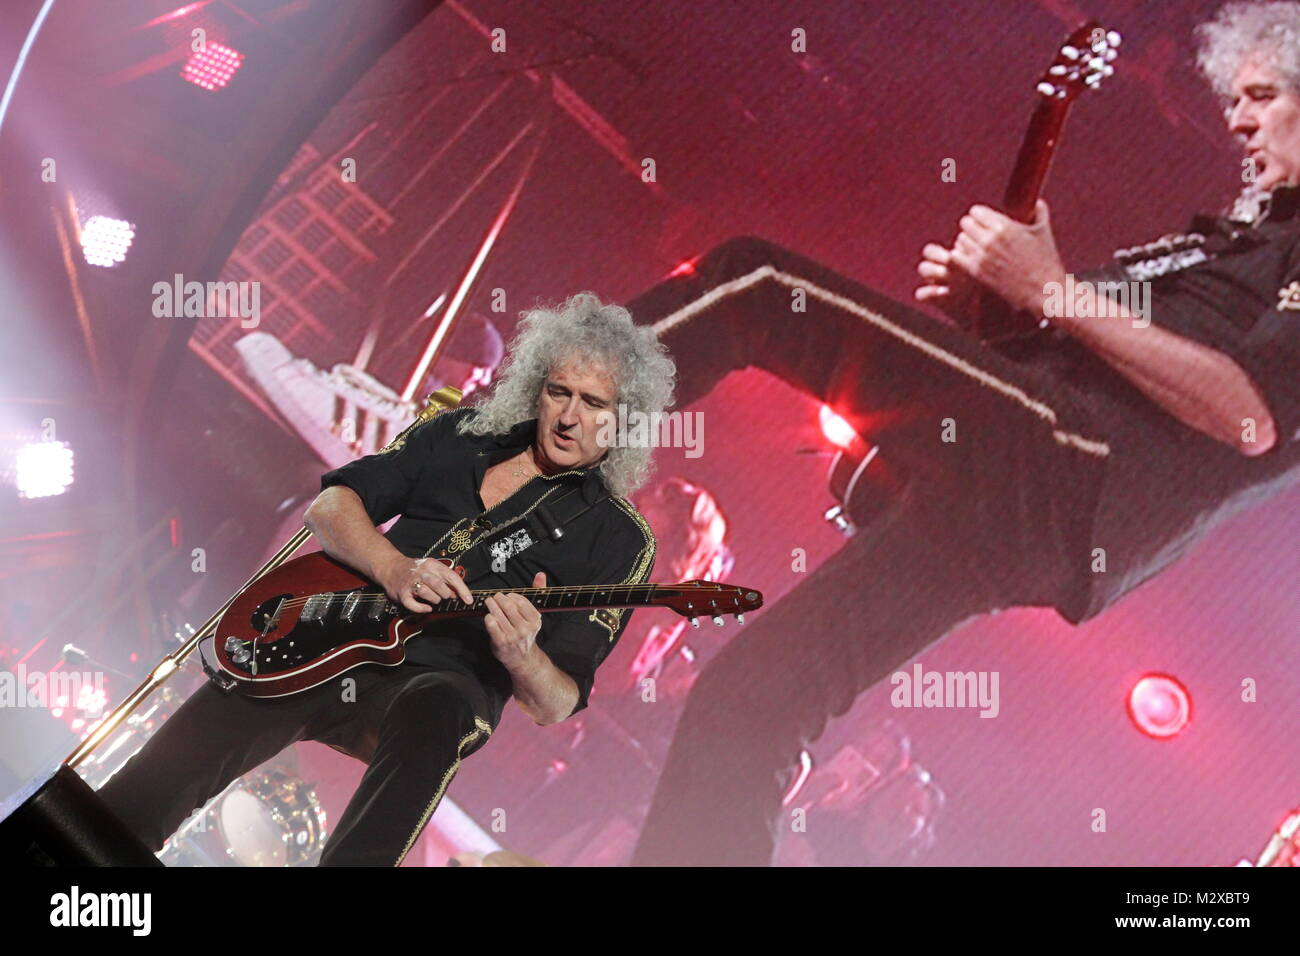 brian may queen guitar stock photos brian may queen. Black Bedroom Furniture Sets. Home Design Ideas